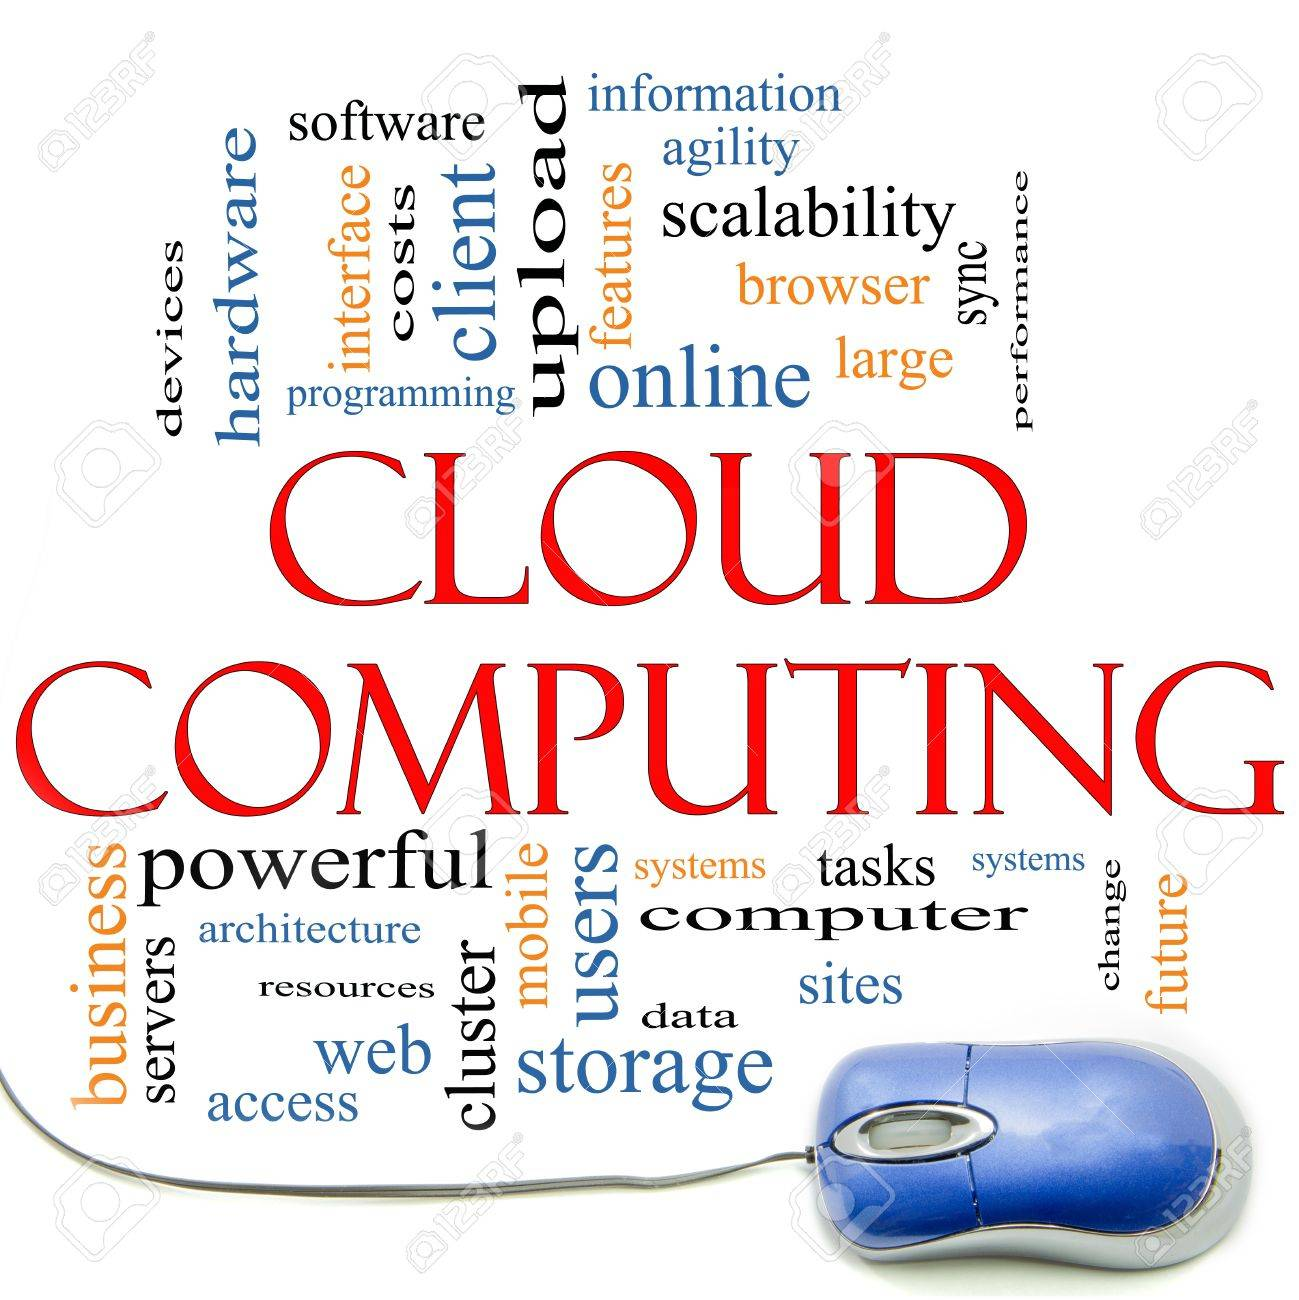 Cloud Comuting word cloud concept with a computer mouse and great terms such as servers, browser, storage, upload, online, future, sync and more. Stock Photo - 14947366